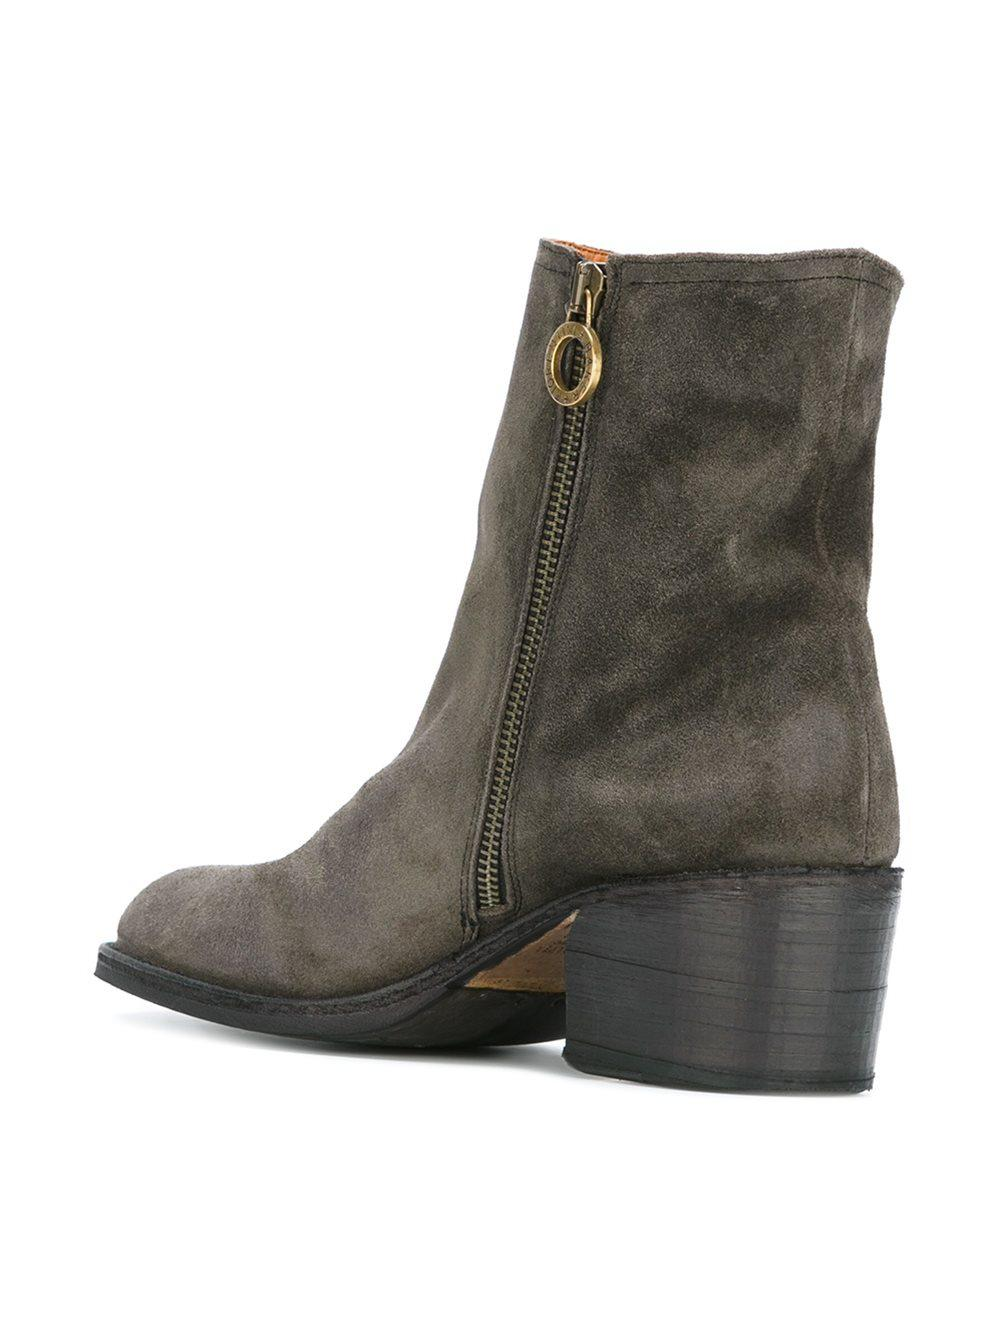 Fiorentini + Baker Leather Zip Ankle Boots in Grey (Grey)